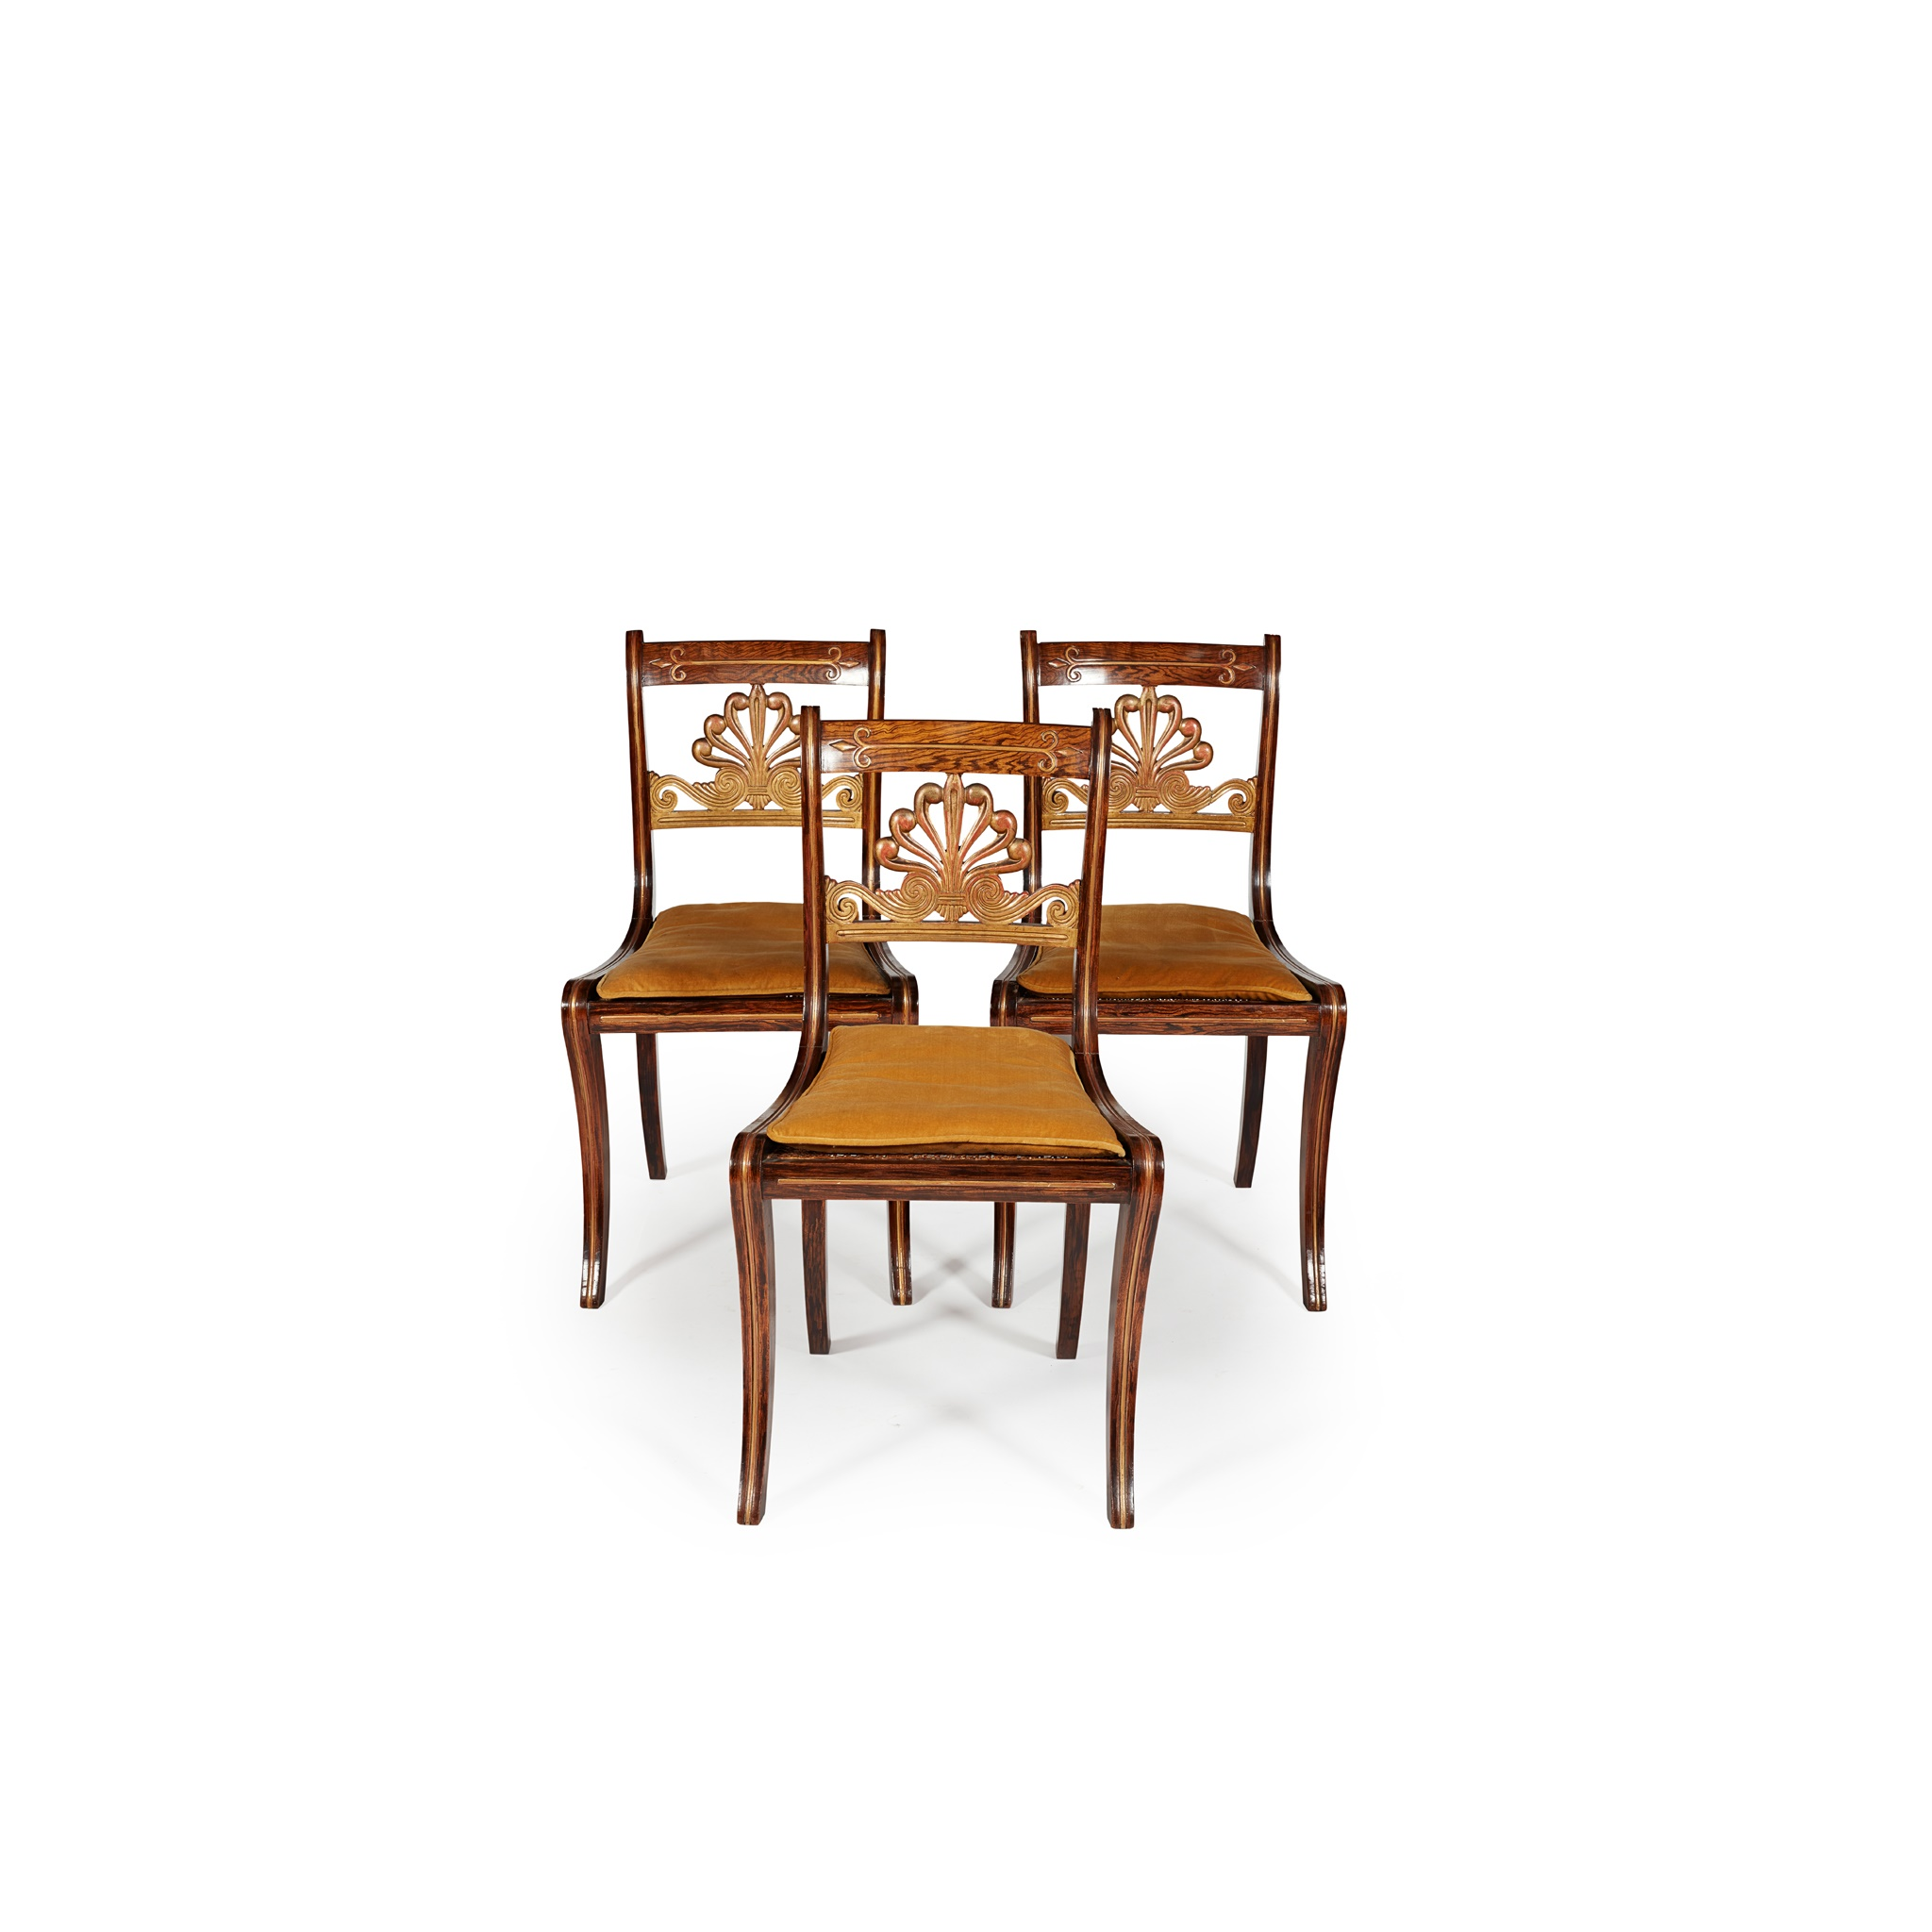 Y SET OF THREE ROSEWOOD GRAIN-PAINTED AND GILT SIDE CHAIRS EARLY 19TH CENTURY